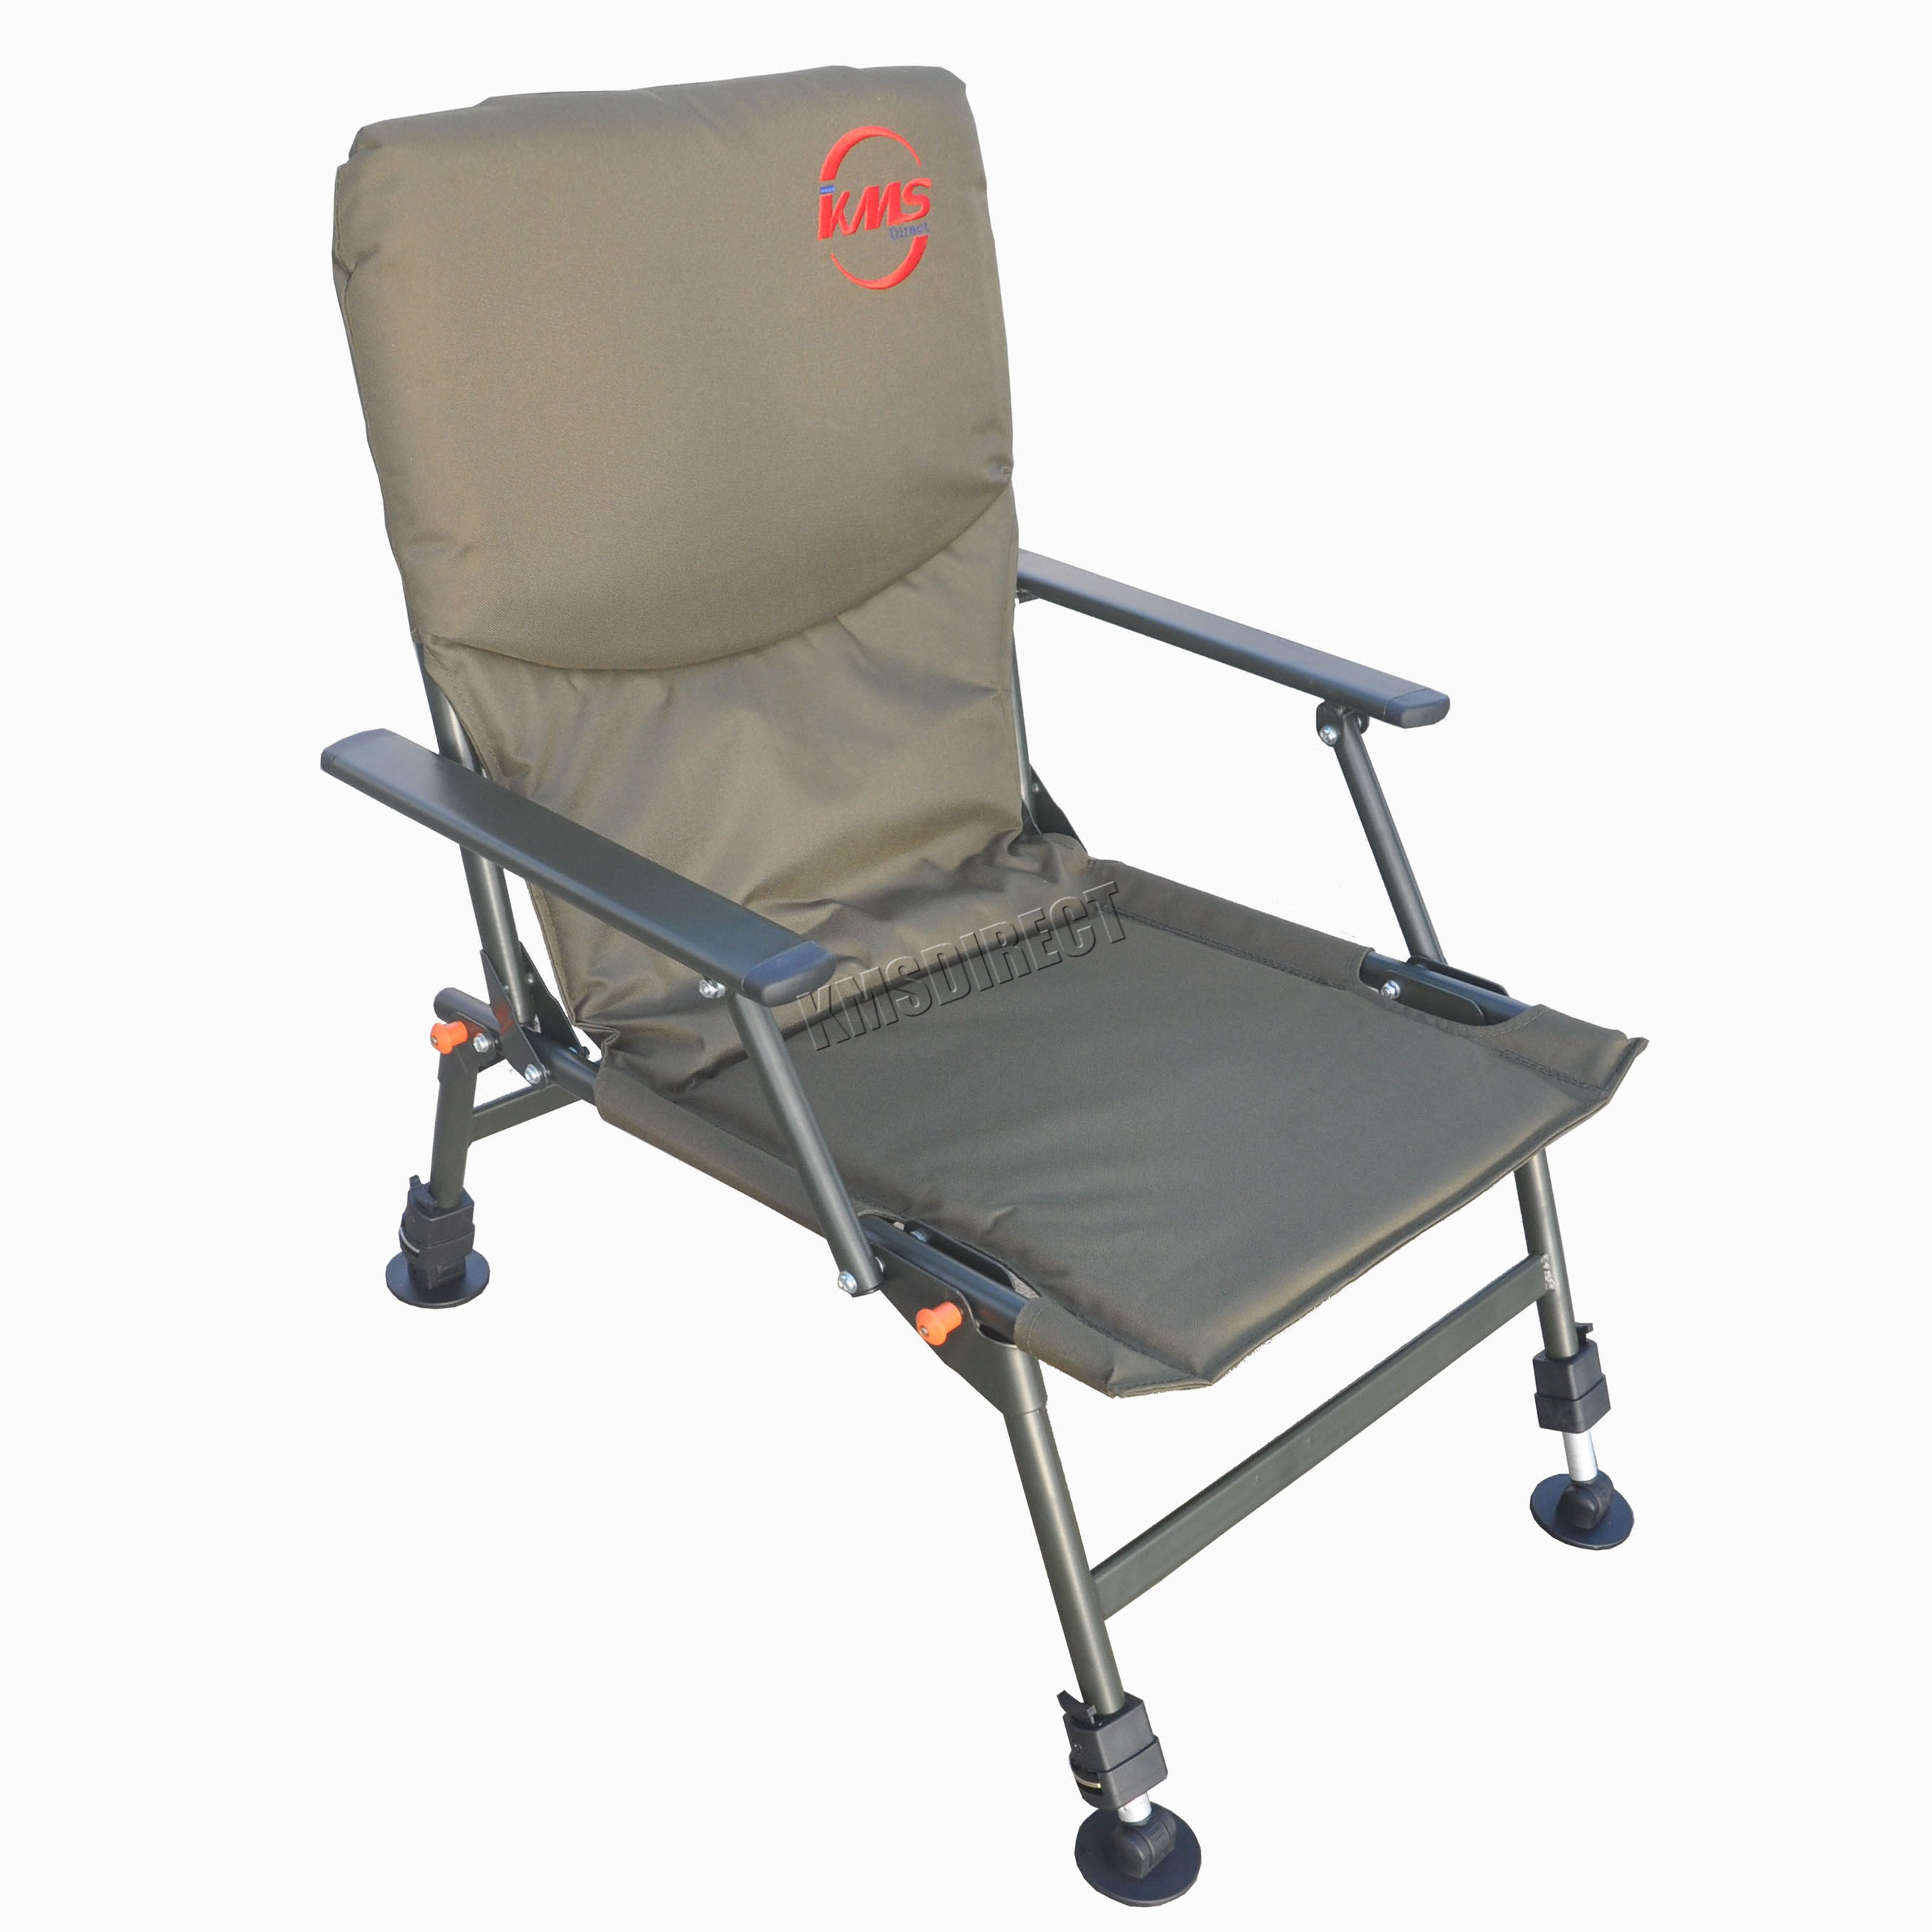 compact camping chair activeaid shower portable folding carp fishing heavy duty 4